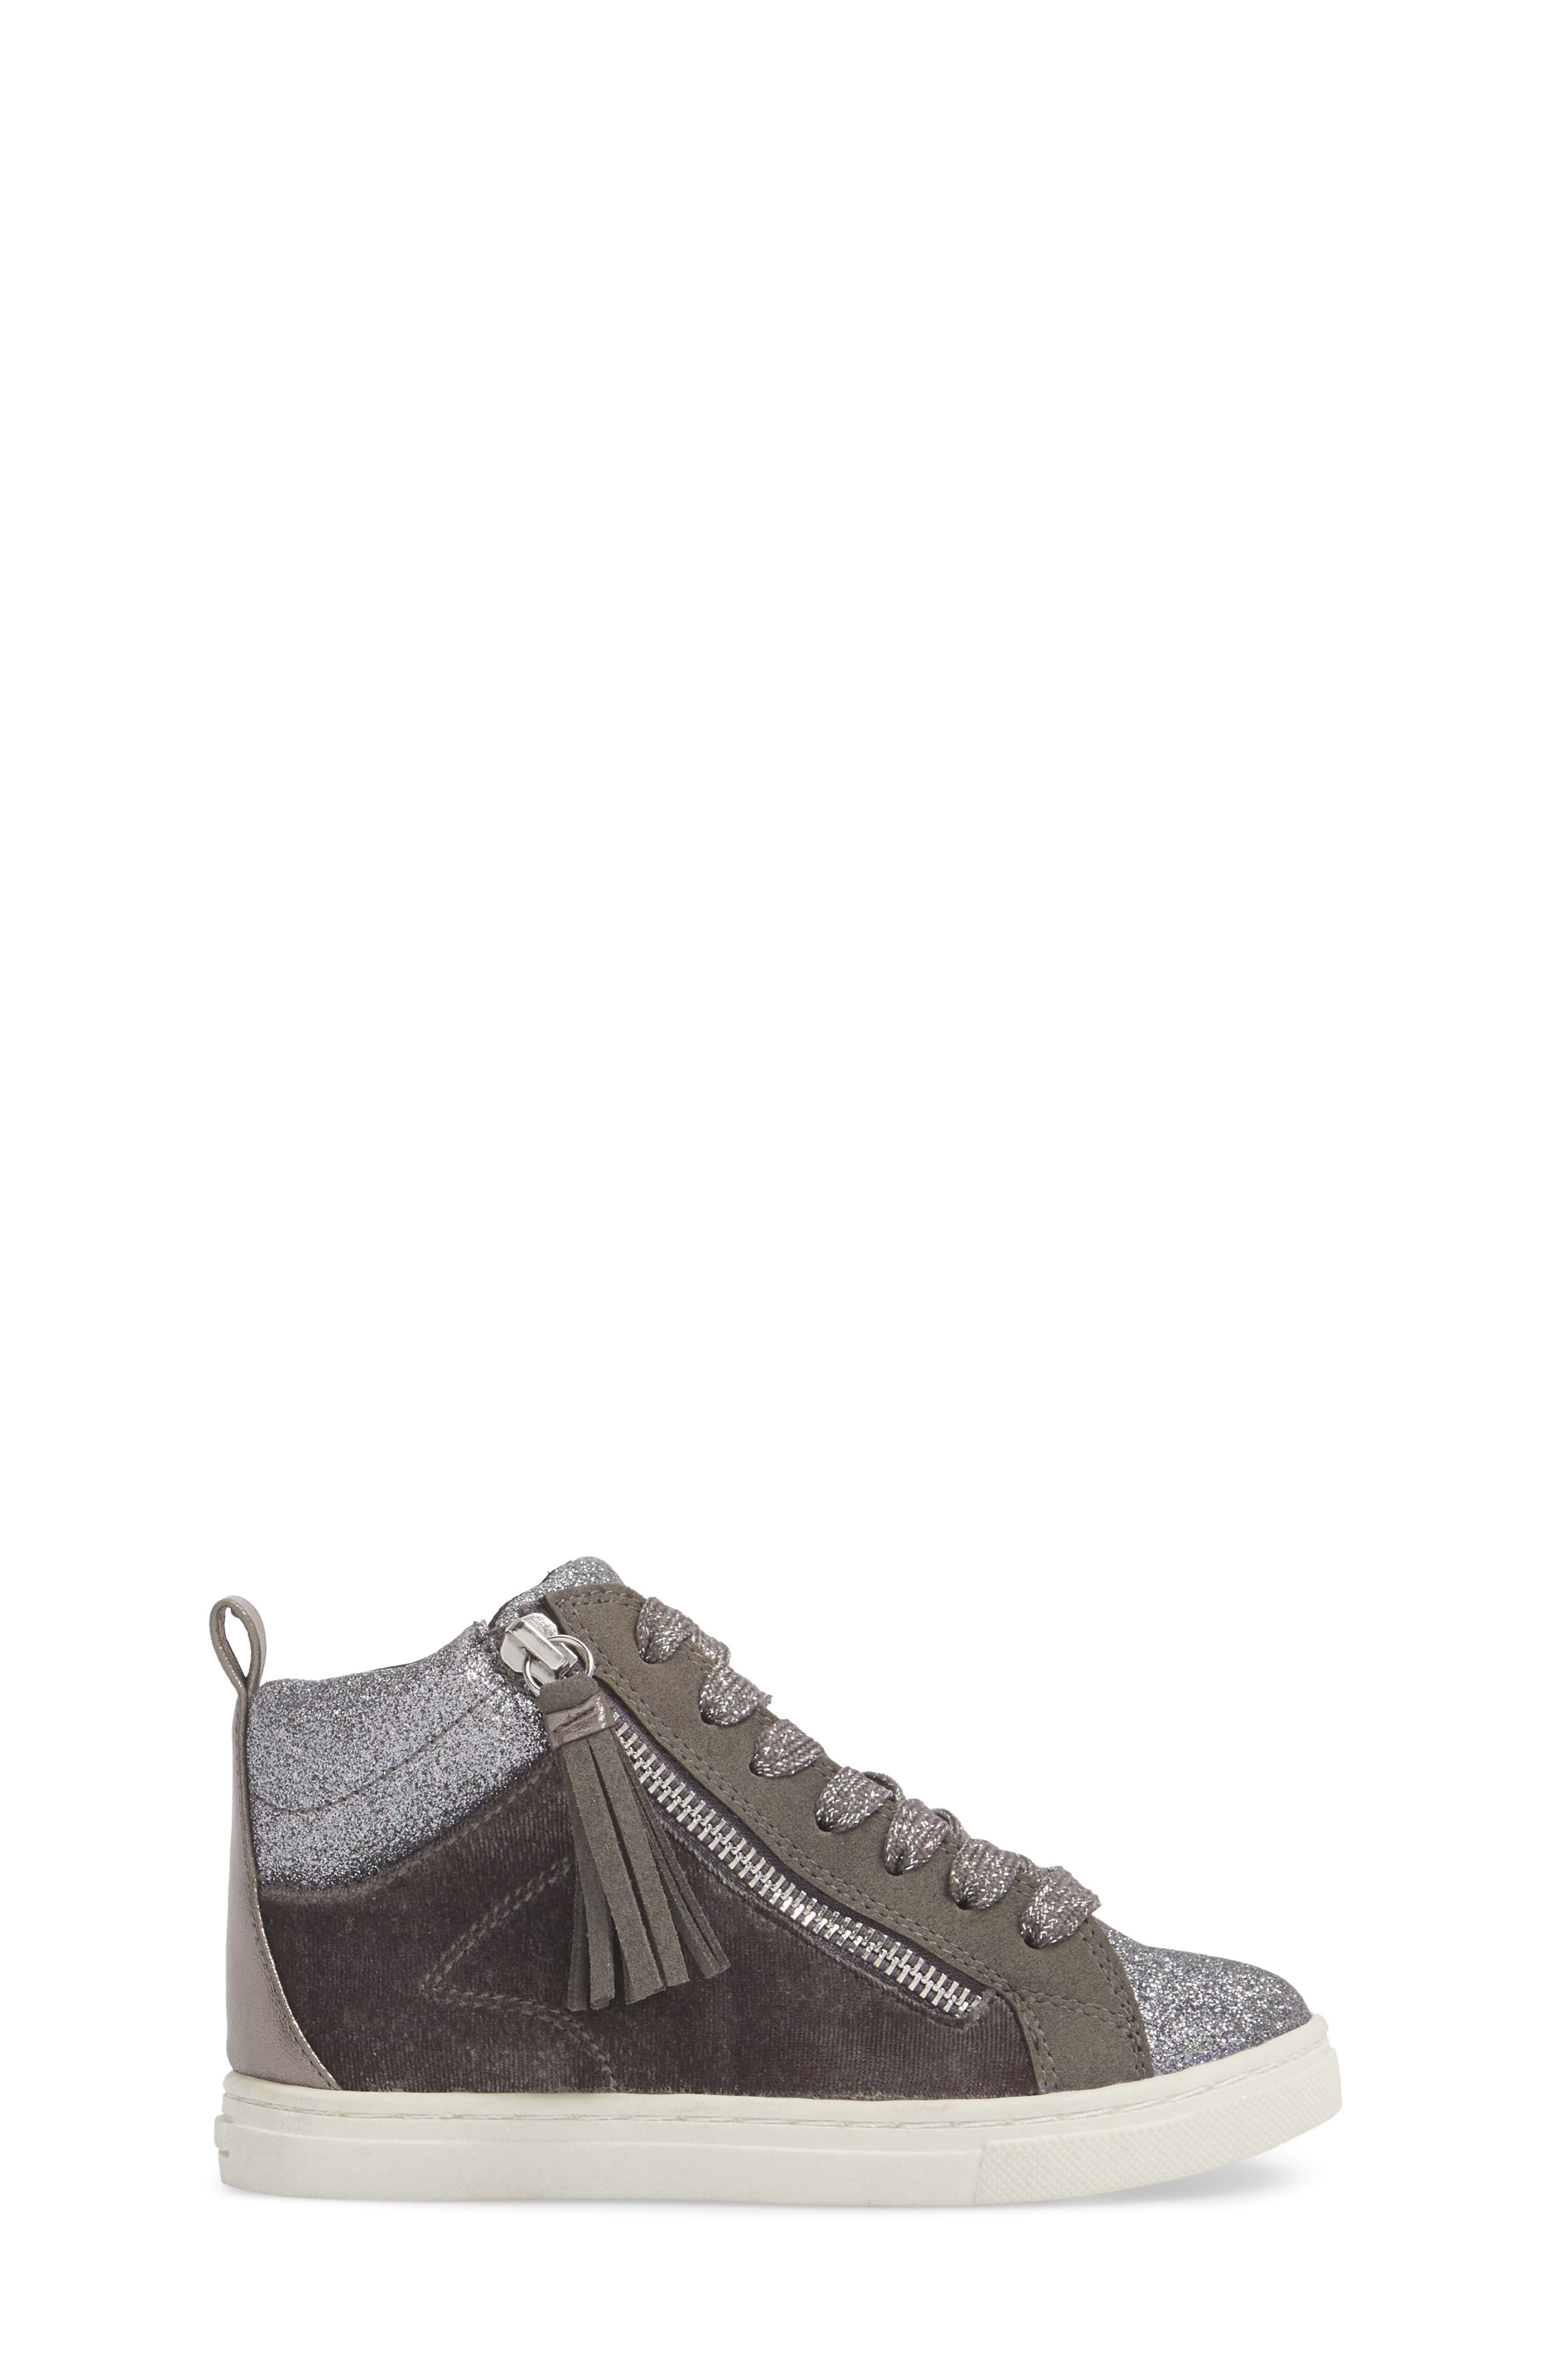 DOLCE VITA,                             Zaila Glitter High Top Sneaker,                             Alternate thumbnail 3, color,                             034